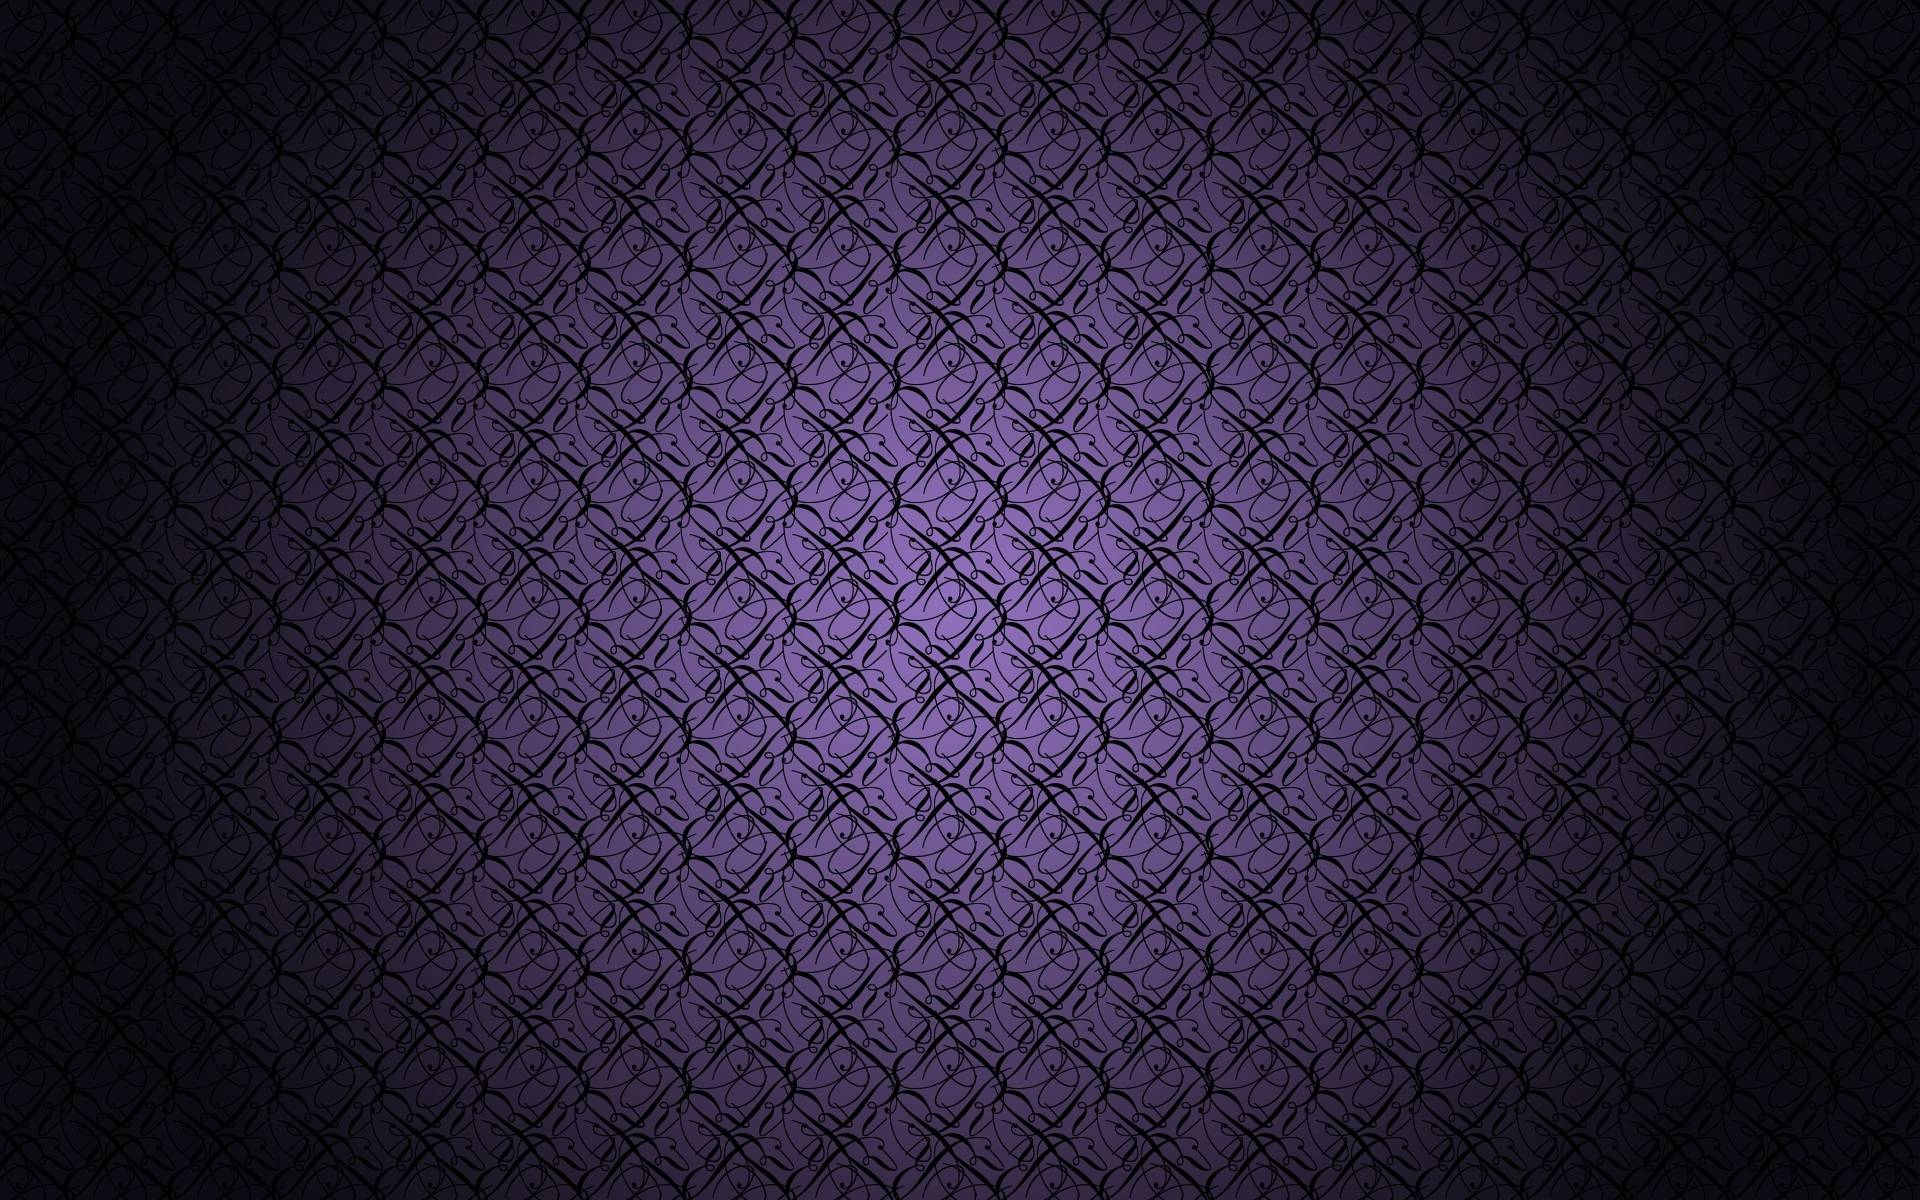 Purple Wallpaper Backgrounds 1920x1200